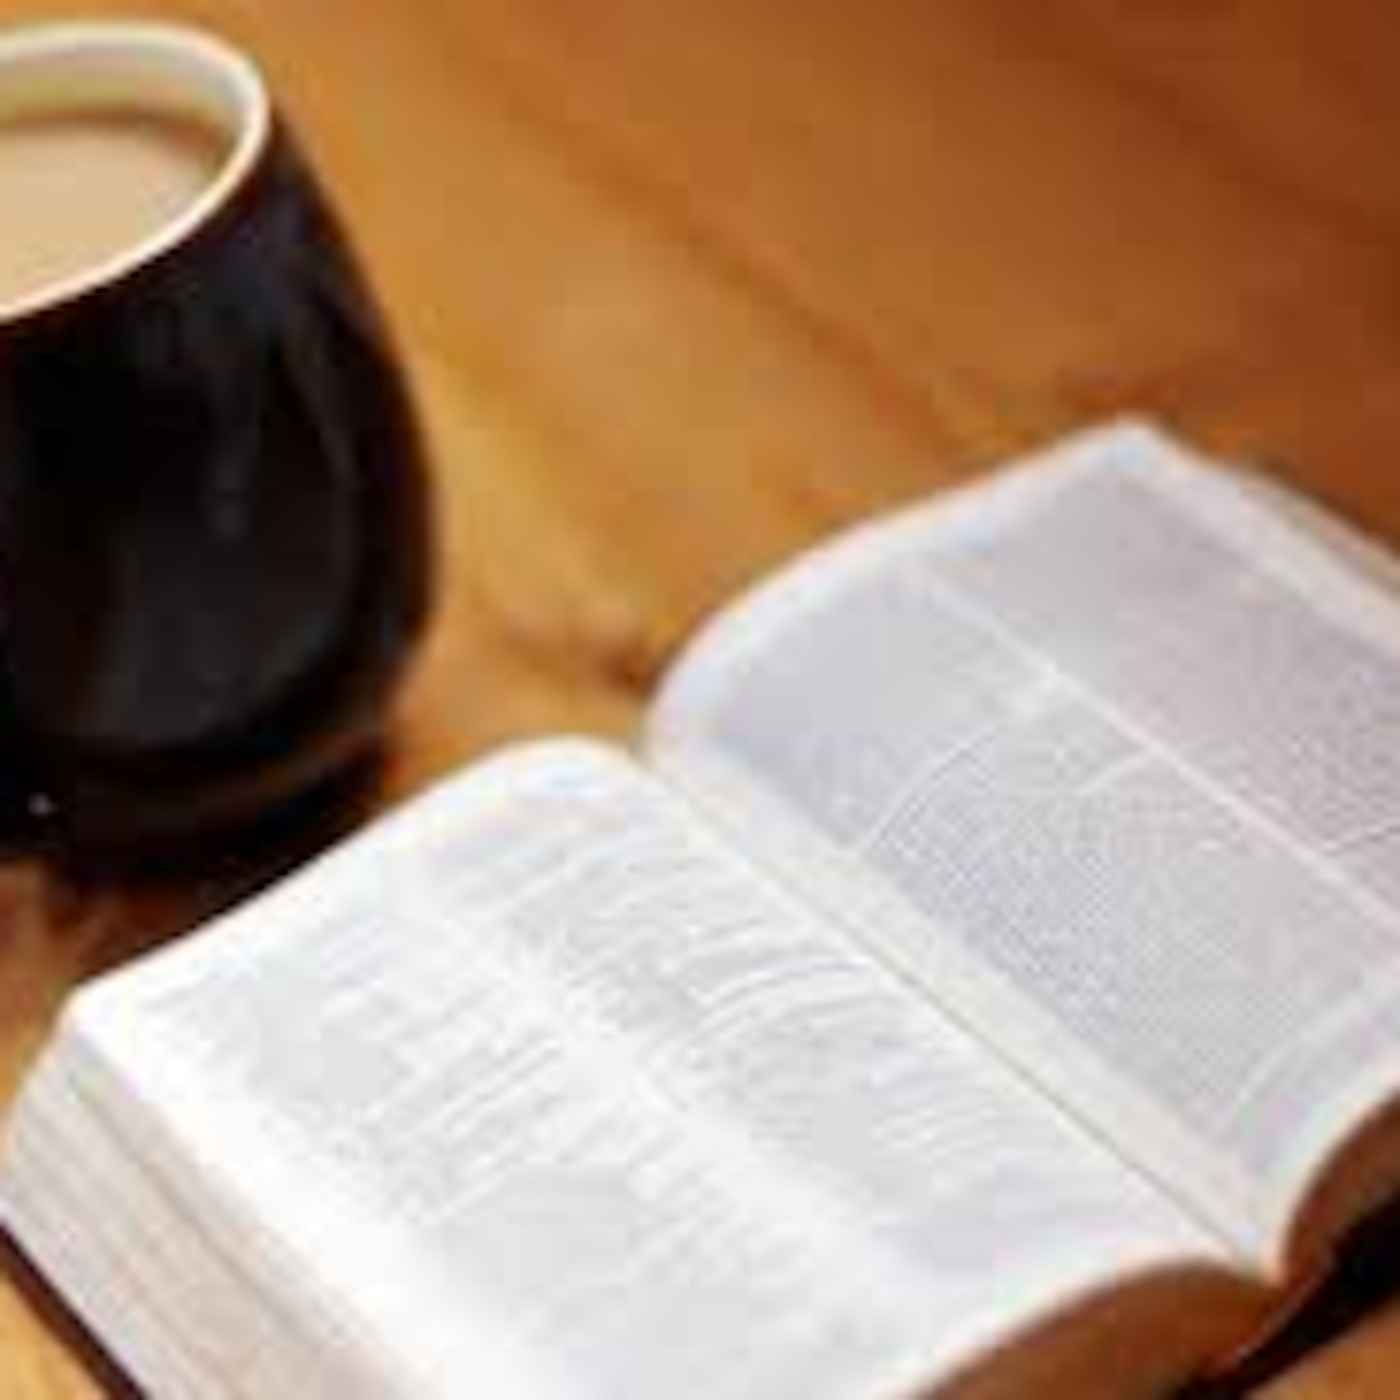 Coffee and a Bible